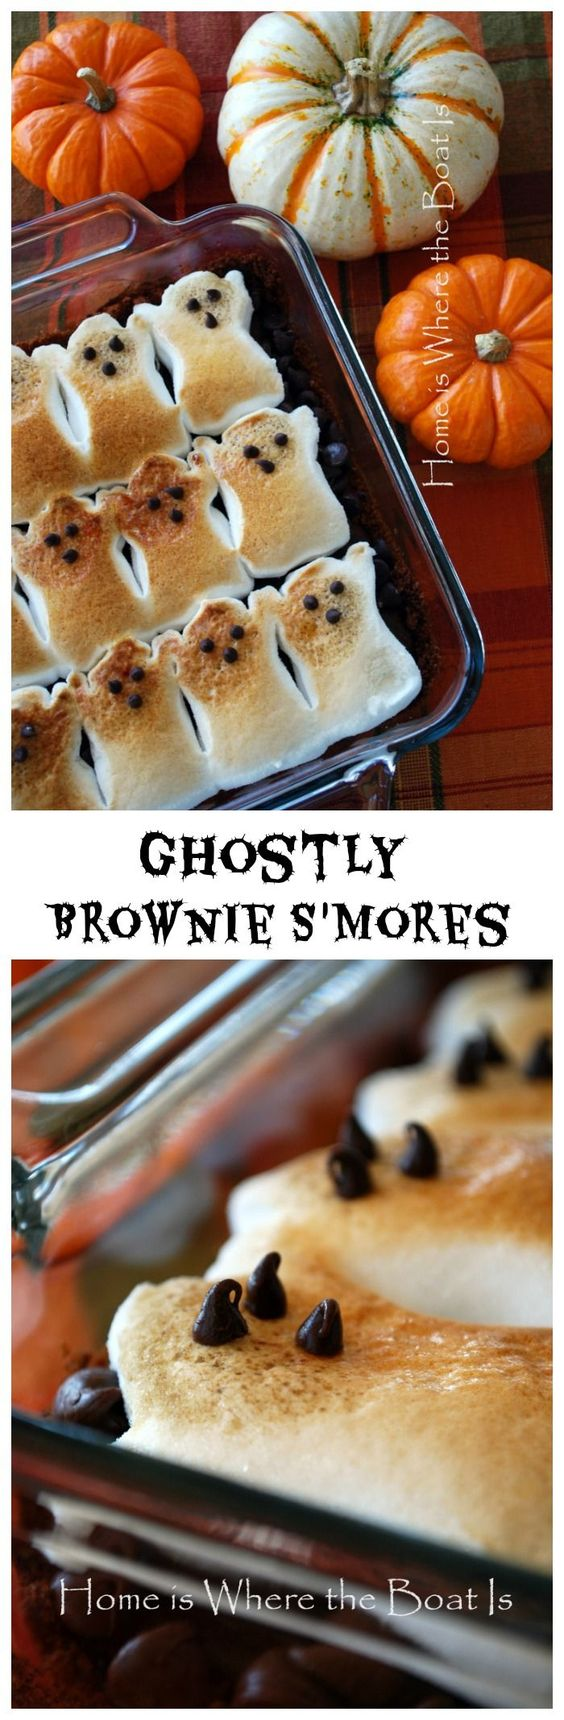 How to Make Mummy Brownies How to Make Mummy Brownies new images